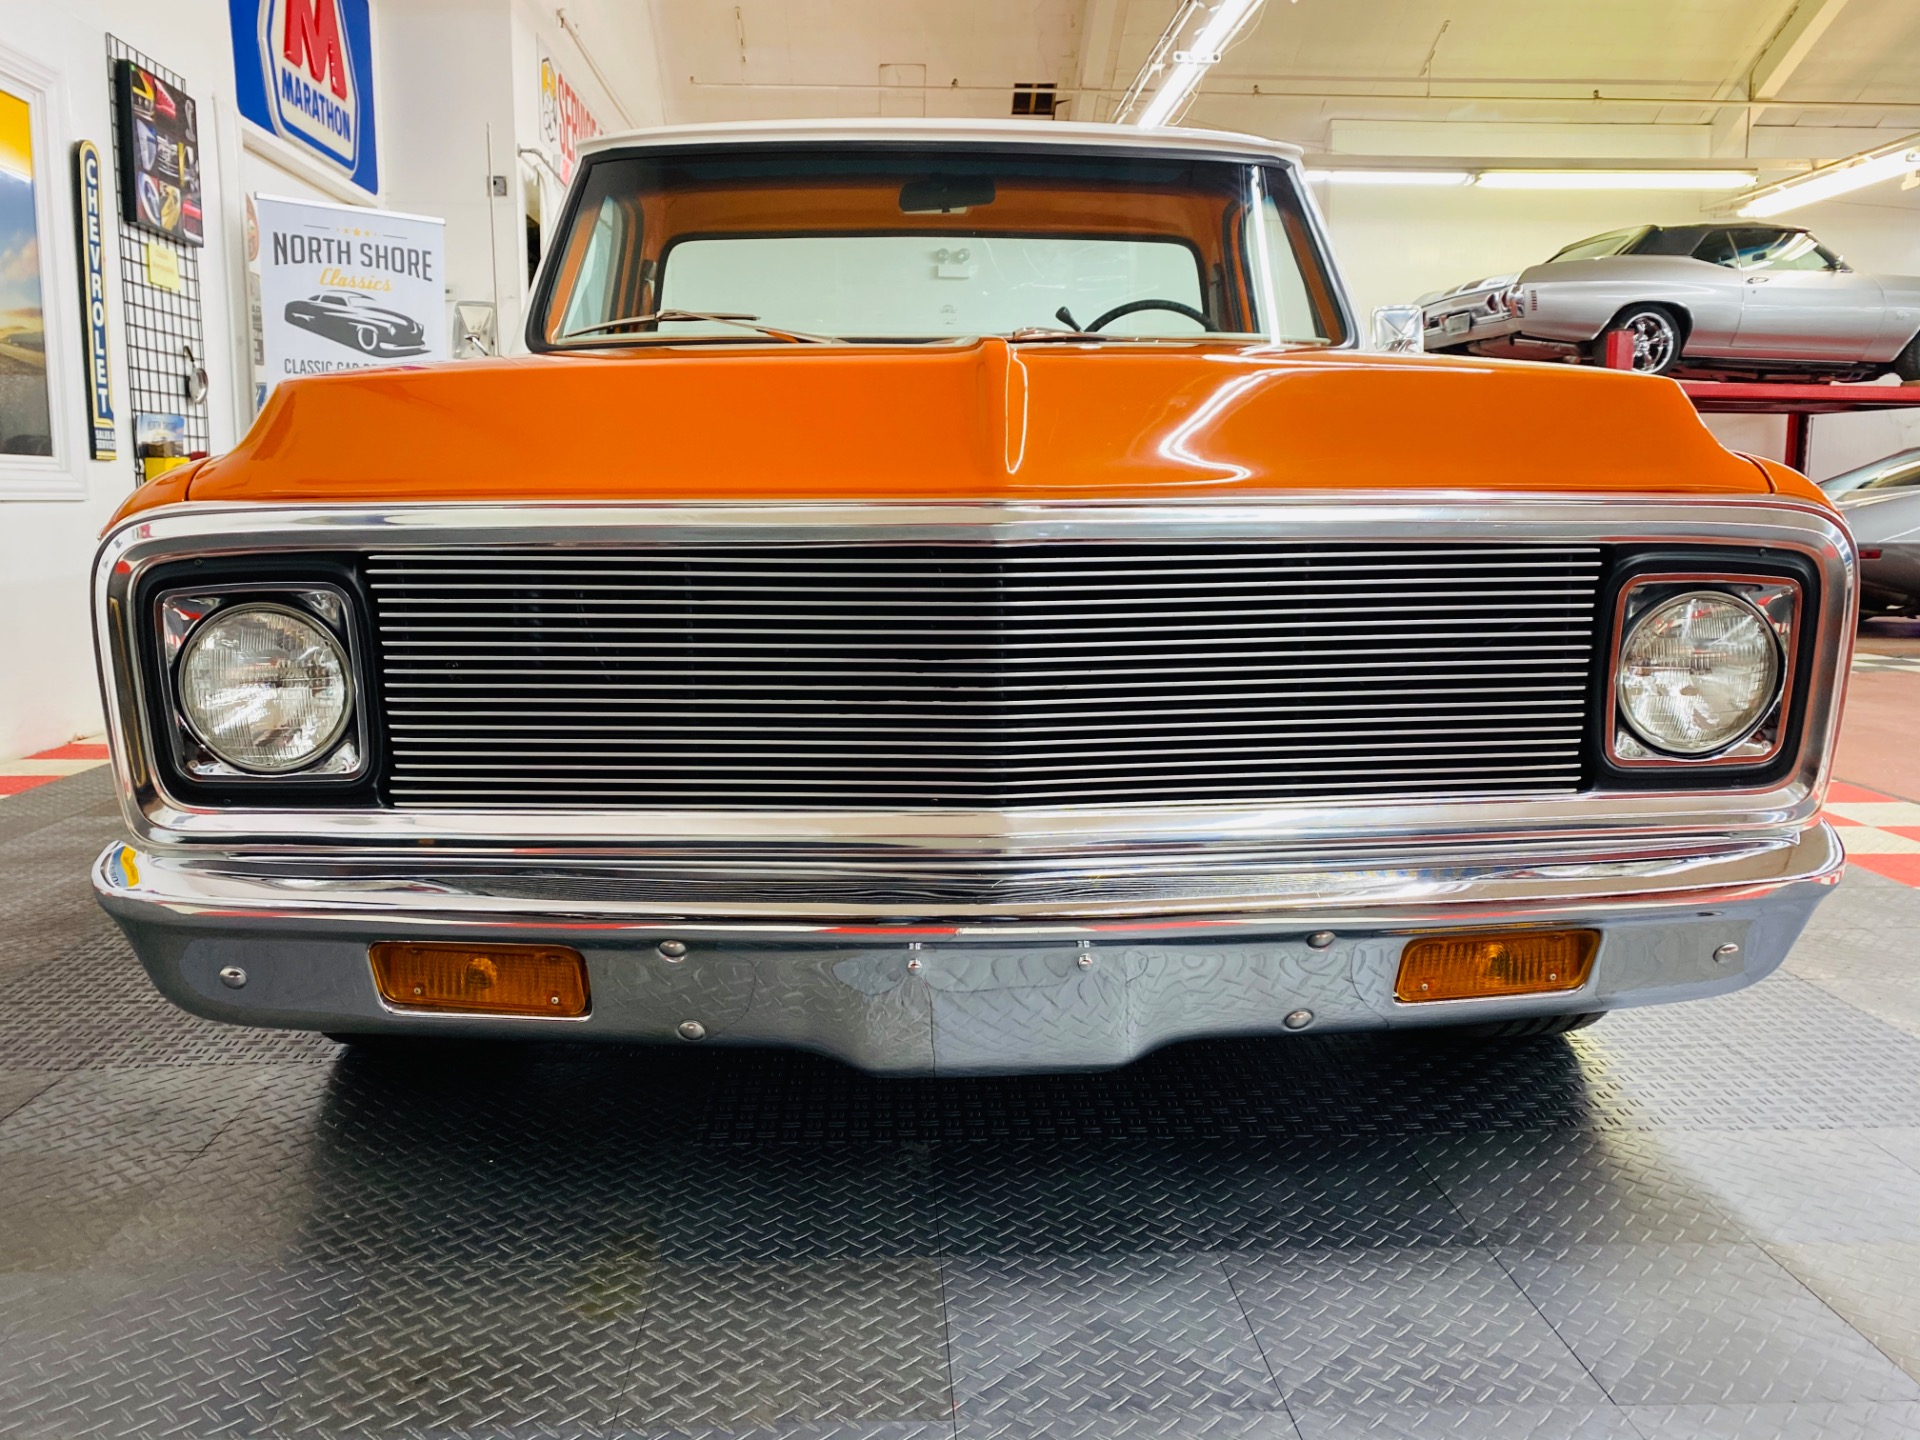 Used 1972 Chevrolet Pickup -C/10 - NEW PAINT - RUST FREE BODY - 454 GM CRATE ENGINE - SEE VIDEO | Mundelein, IL